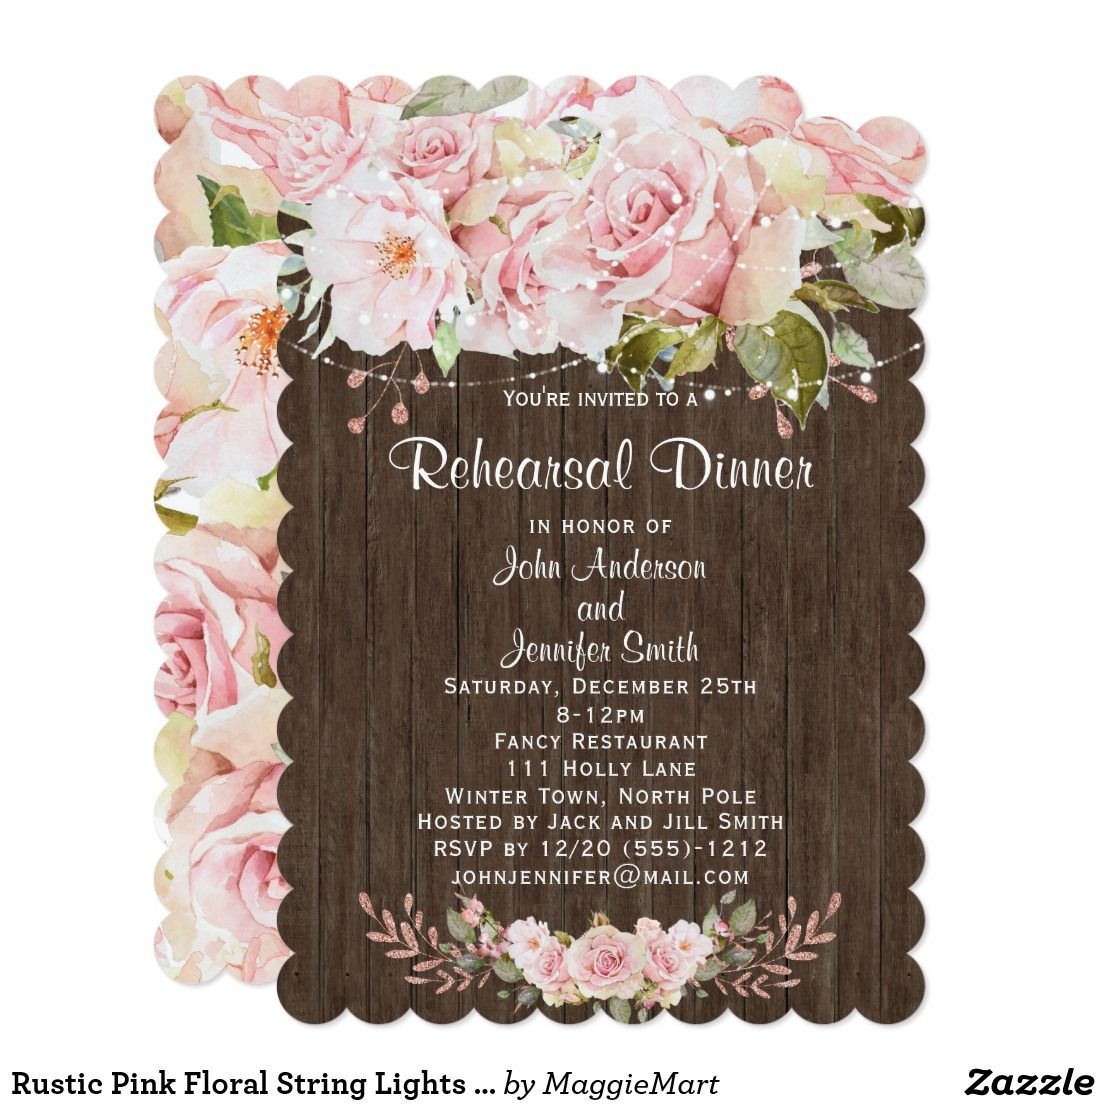 Rustic Pink Floral String Lights Rehearsal Dinner Invitation | Zazzle.com